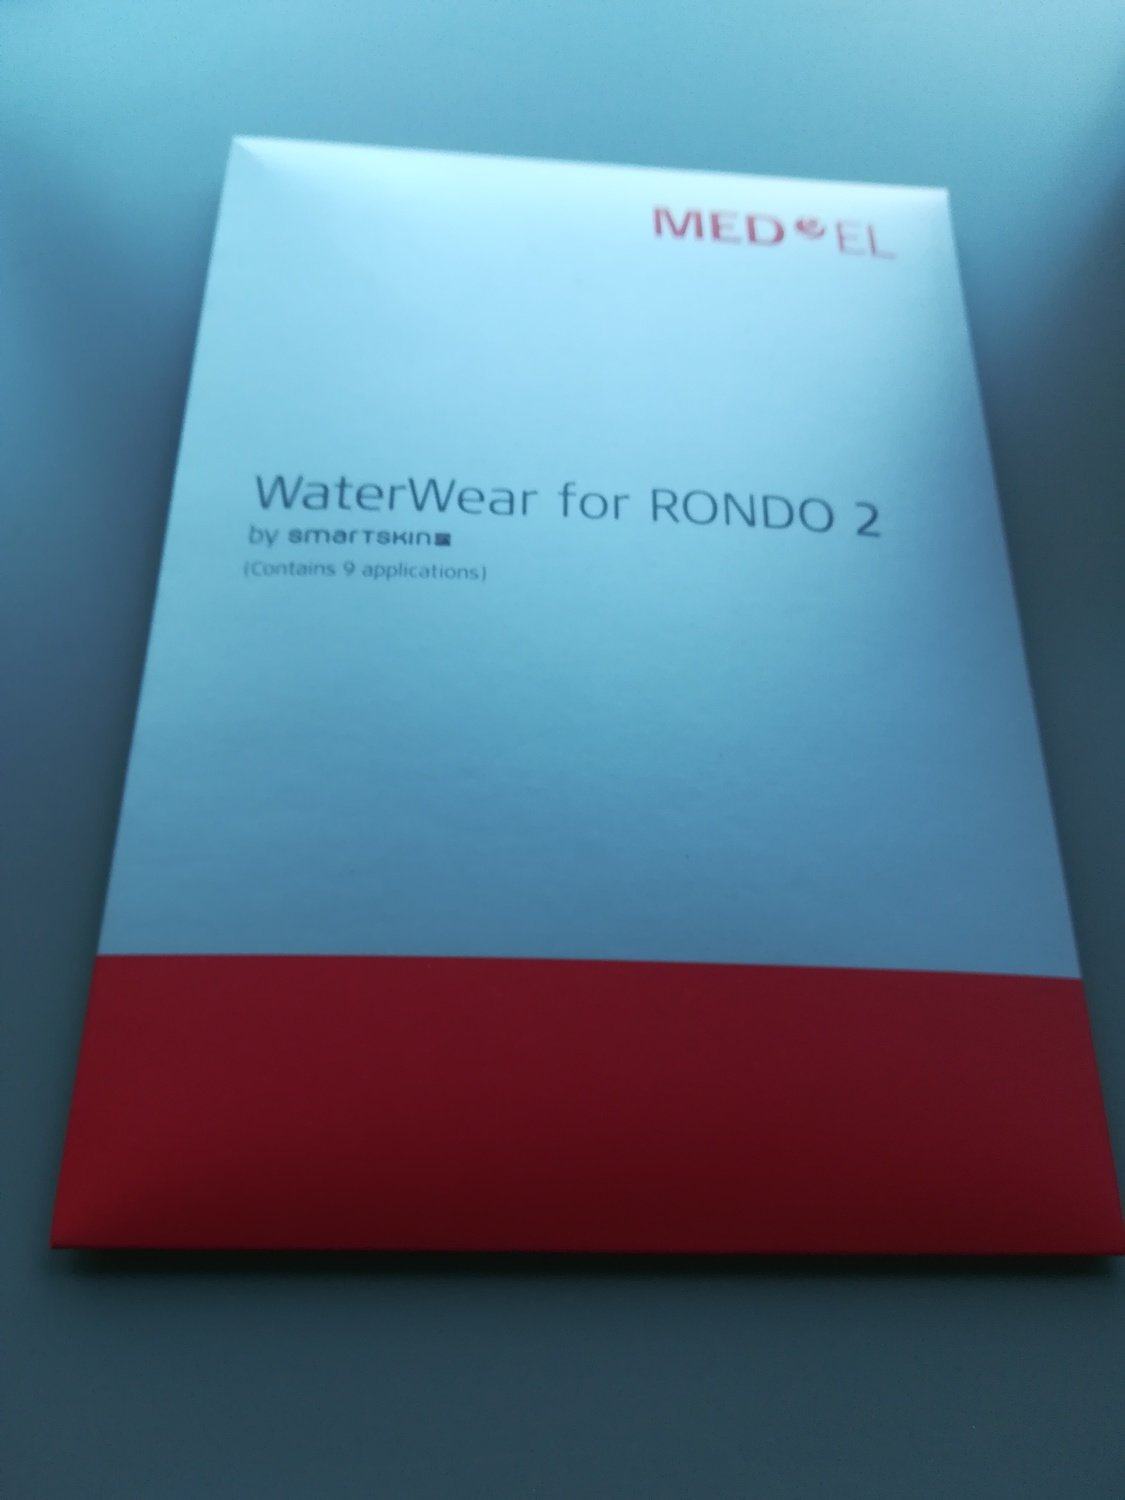 WaterWear for RONDO 2